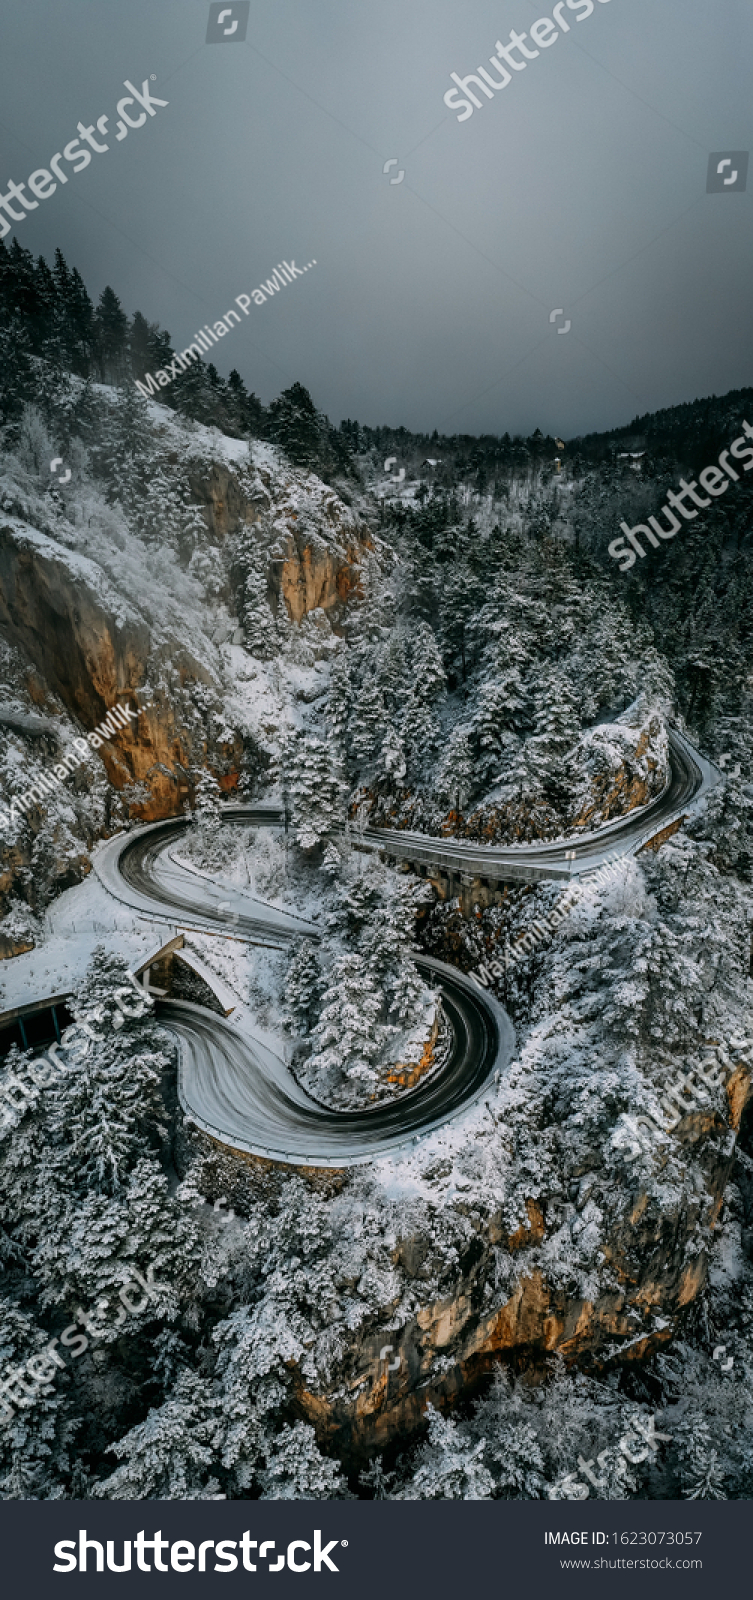 Curvy windy mountain road in snow covered forest, top down aerial view. Winter landscape. #1623073057